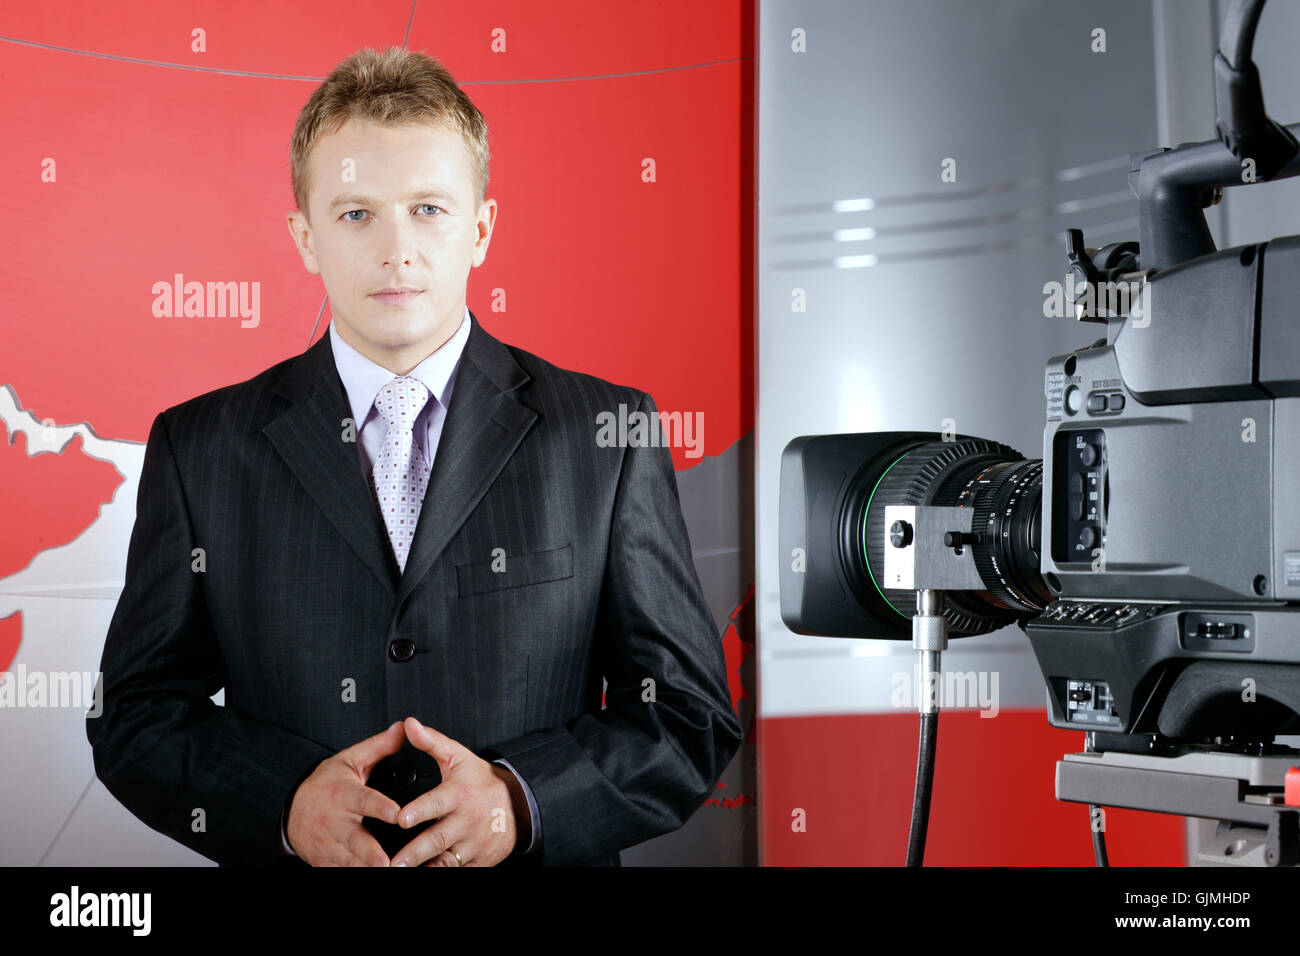 entertainment studio news - Stock Image